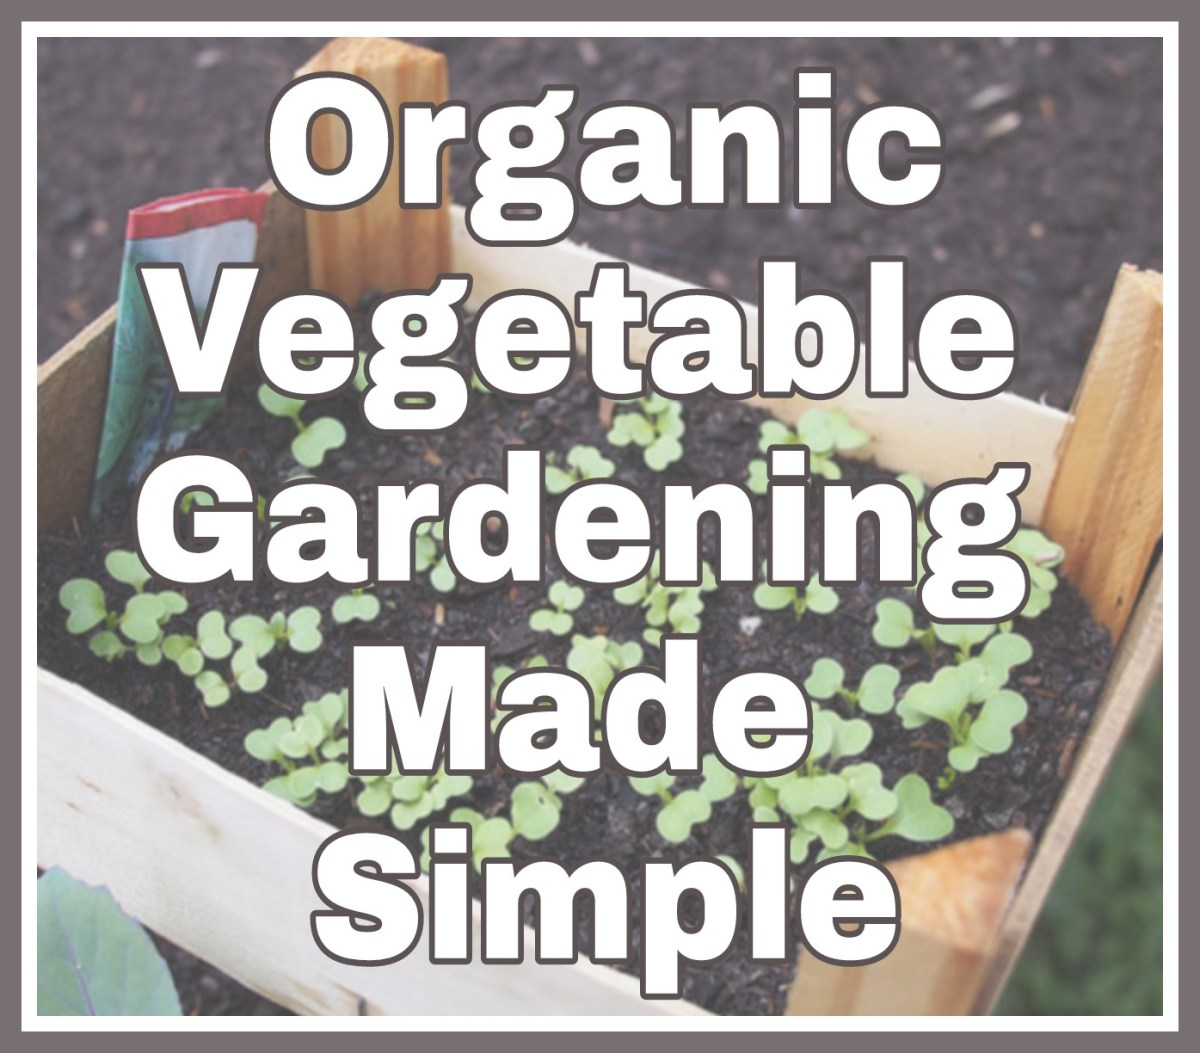 Organic Vegetable Gardening Made Simple